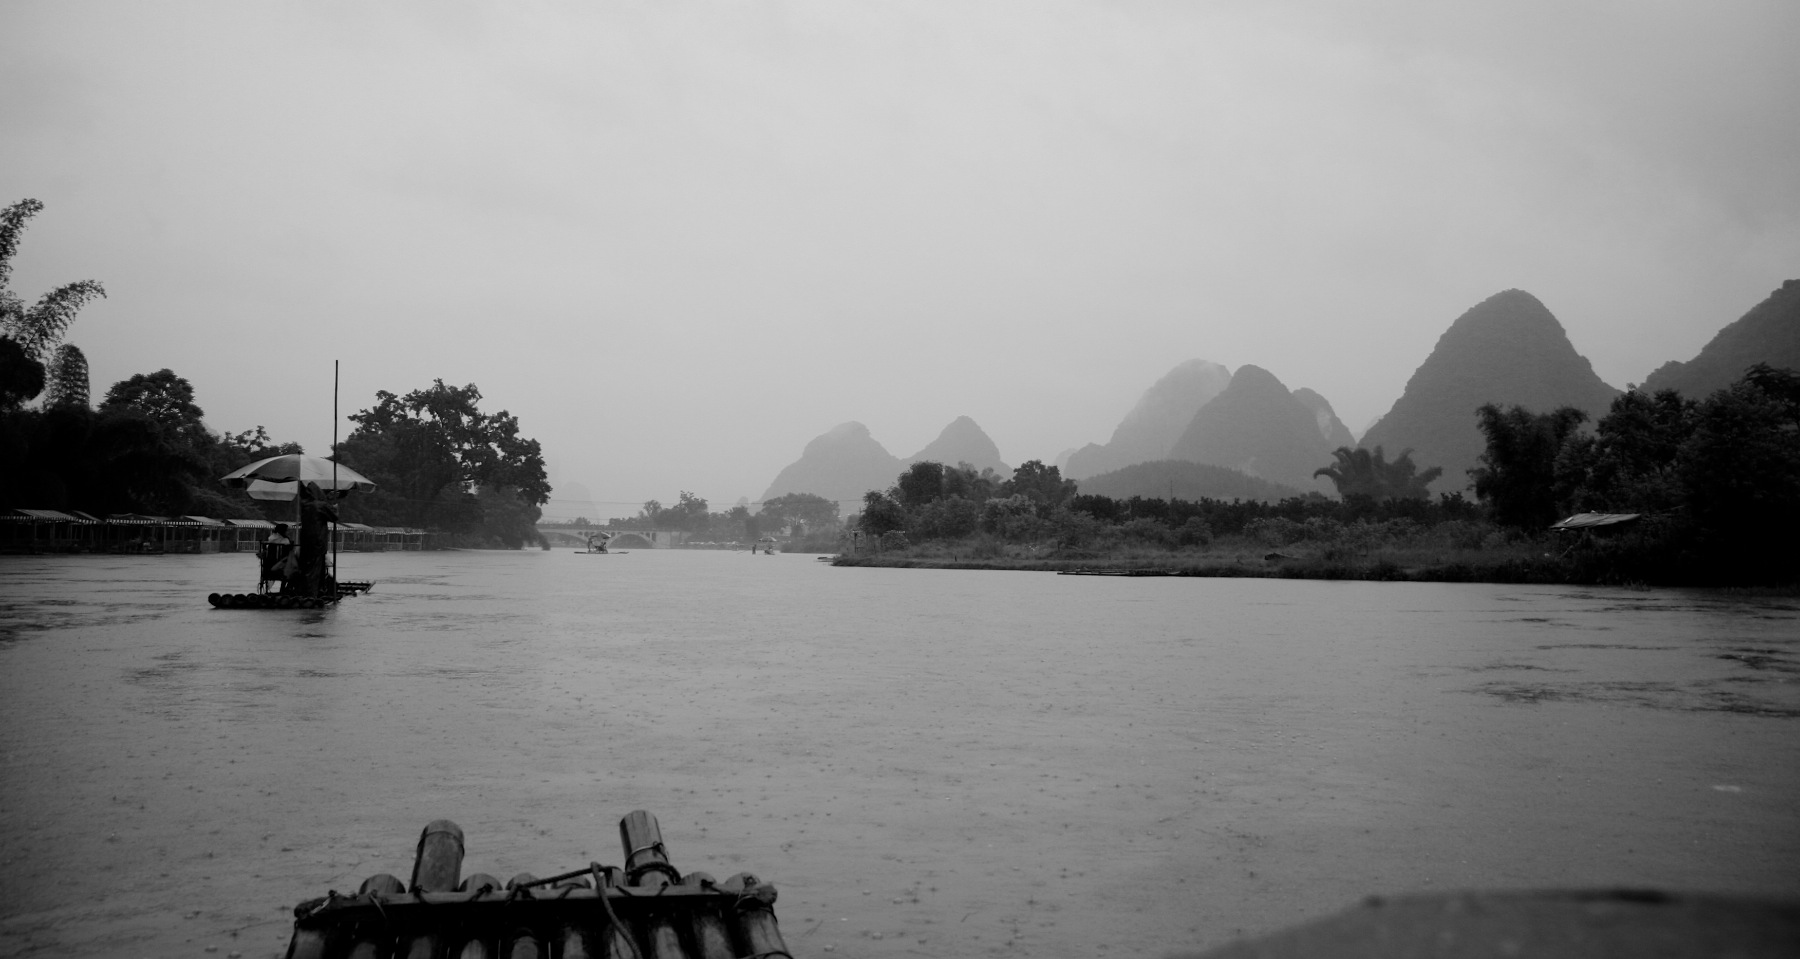 Ride on Li River in Yangshou, China